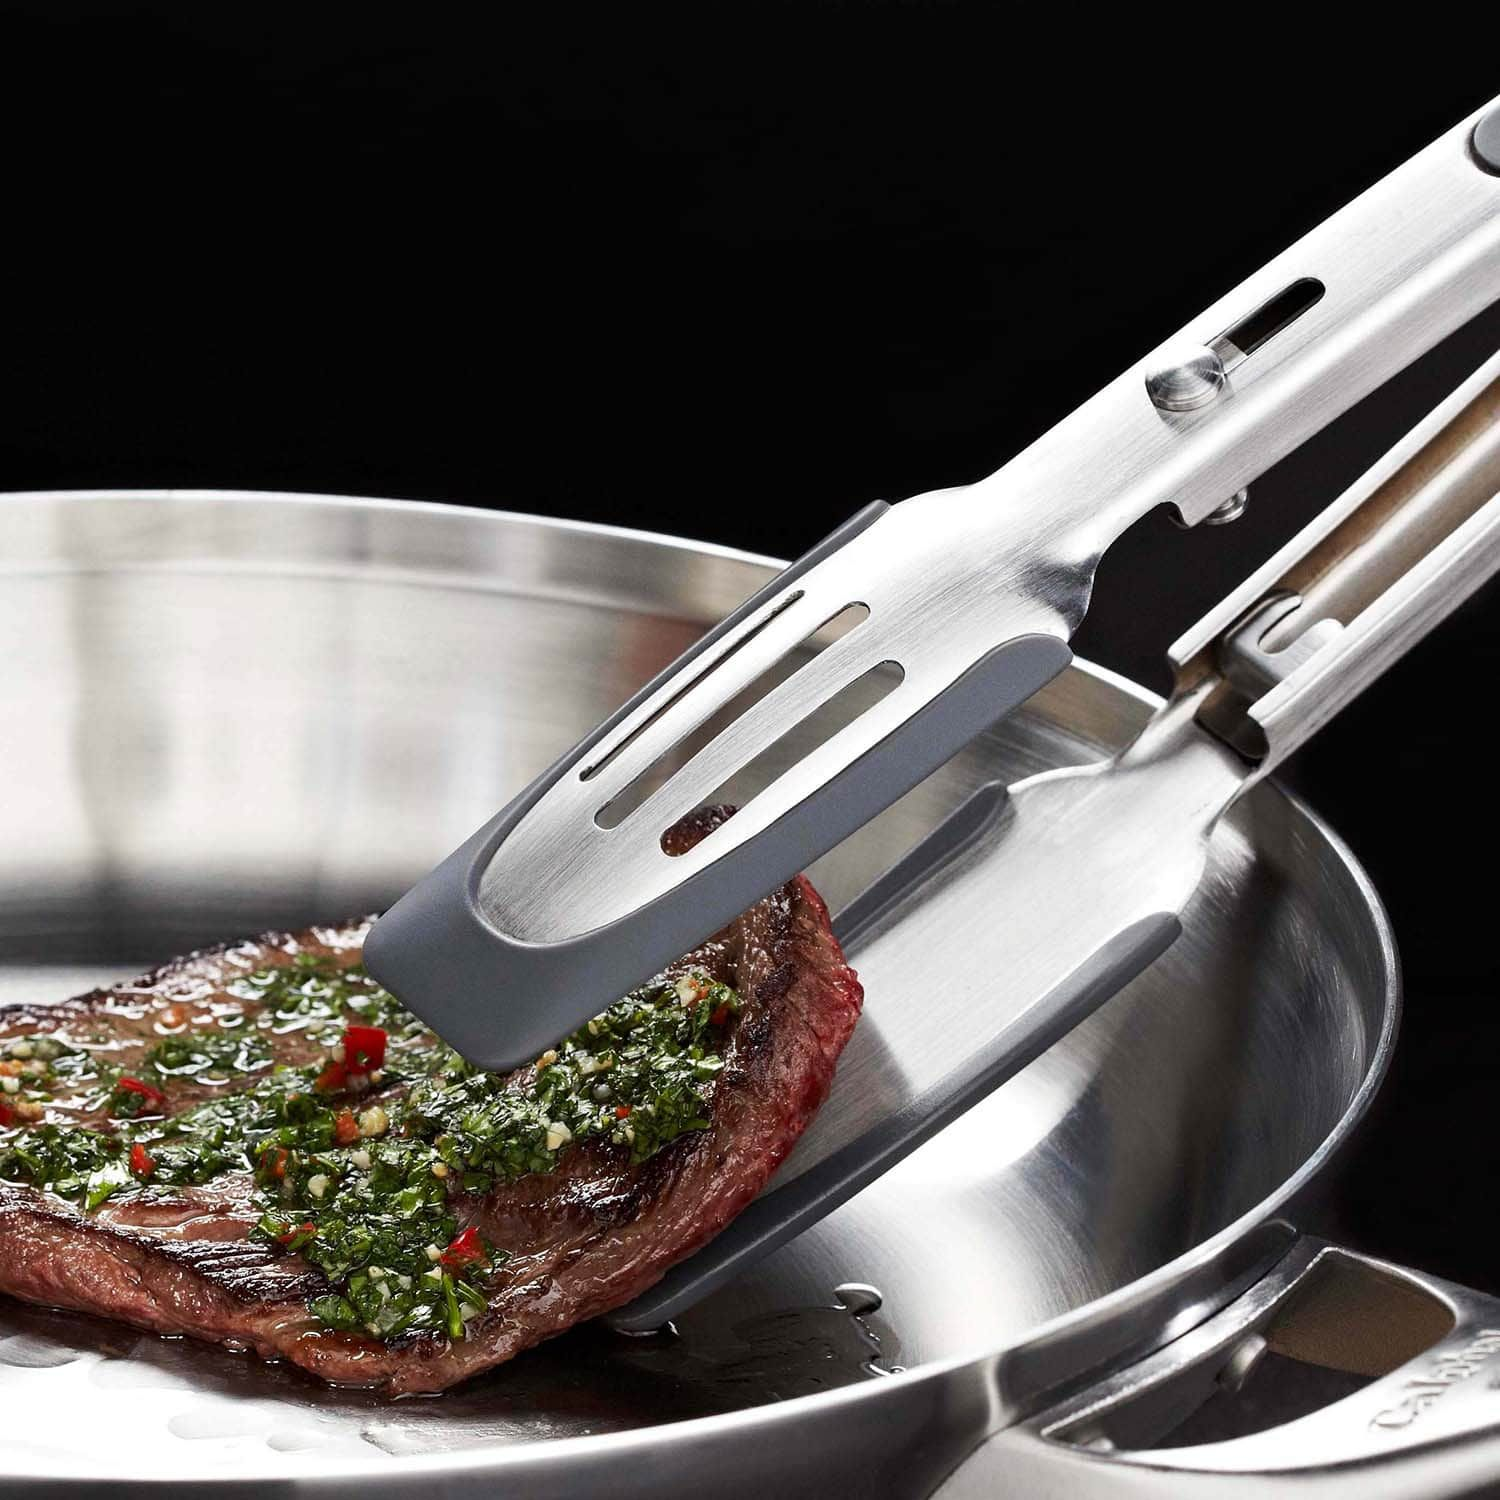 Kitchen Barbecue Breaded Beef Steak Multi-function Stainless Steel BBQ Tongs